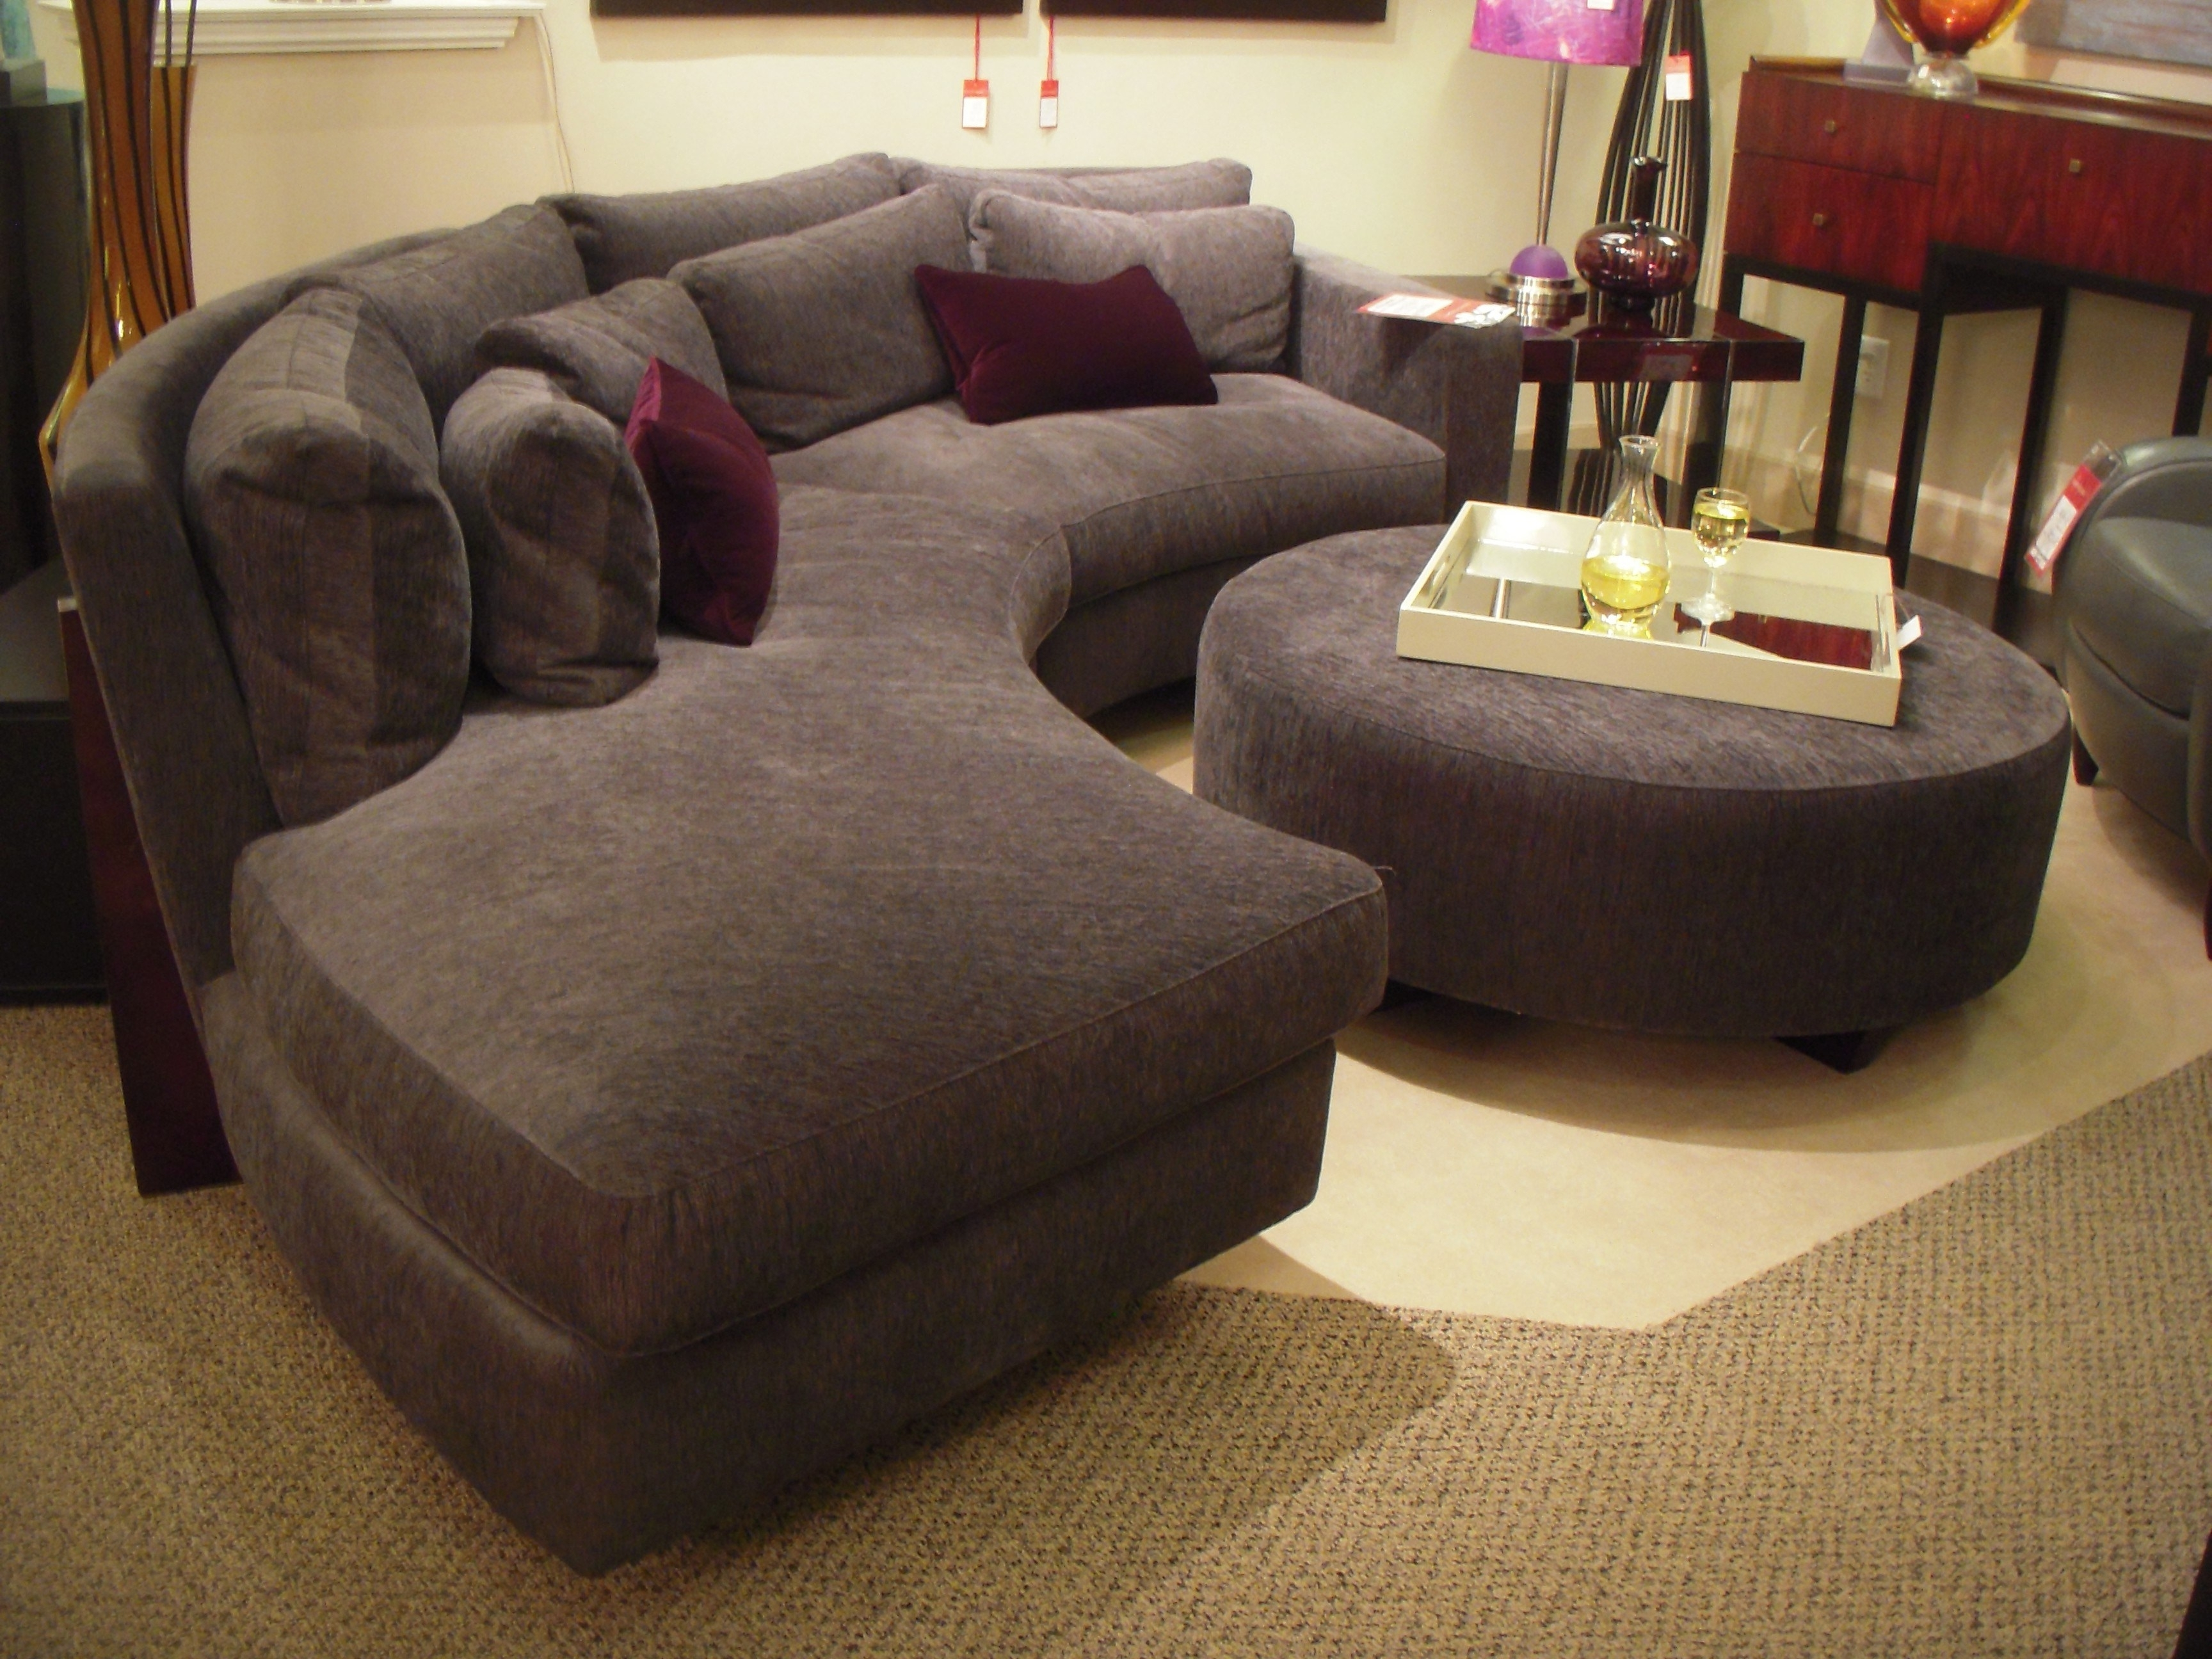 Inexpensive Sectional Sofa Regarding Most Current Affordable Sectional Sofas (View 15 of 20)